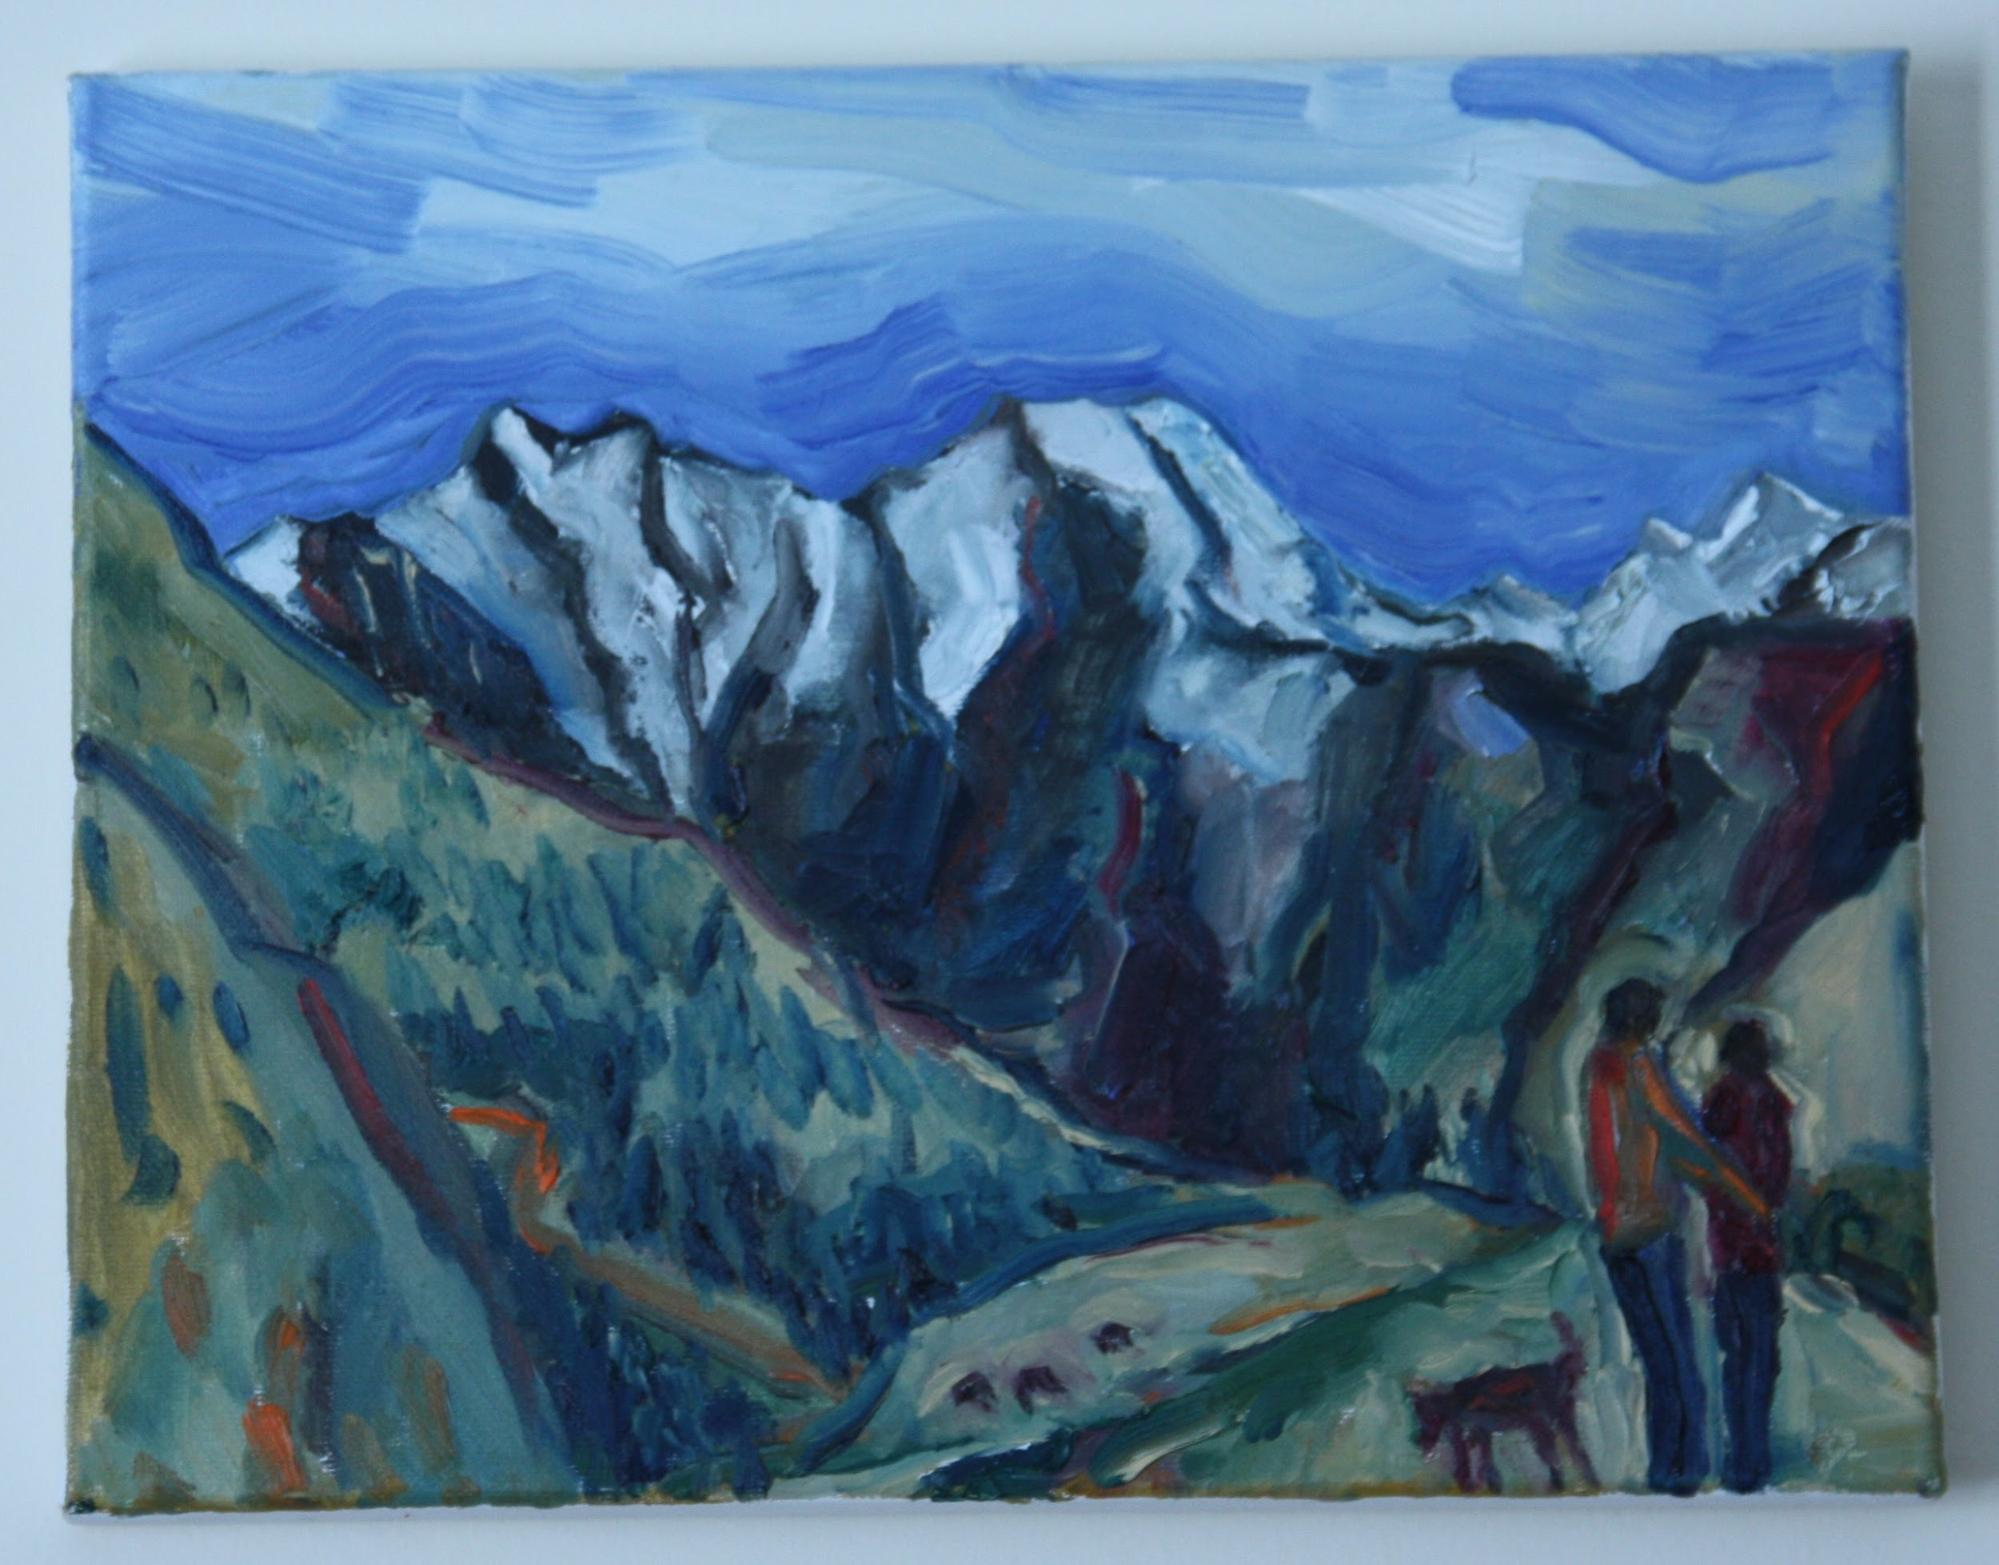 Painting of mountains with blue tint